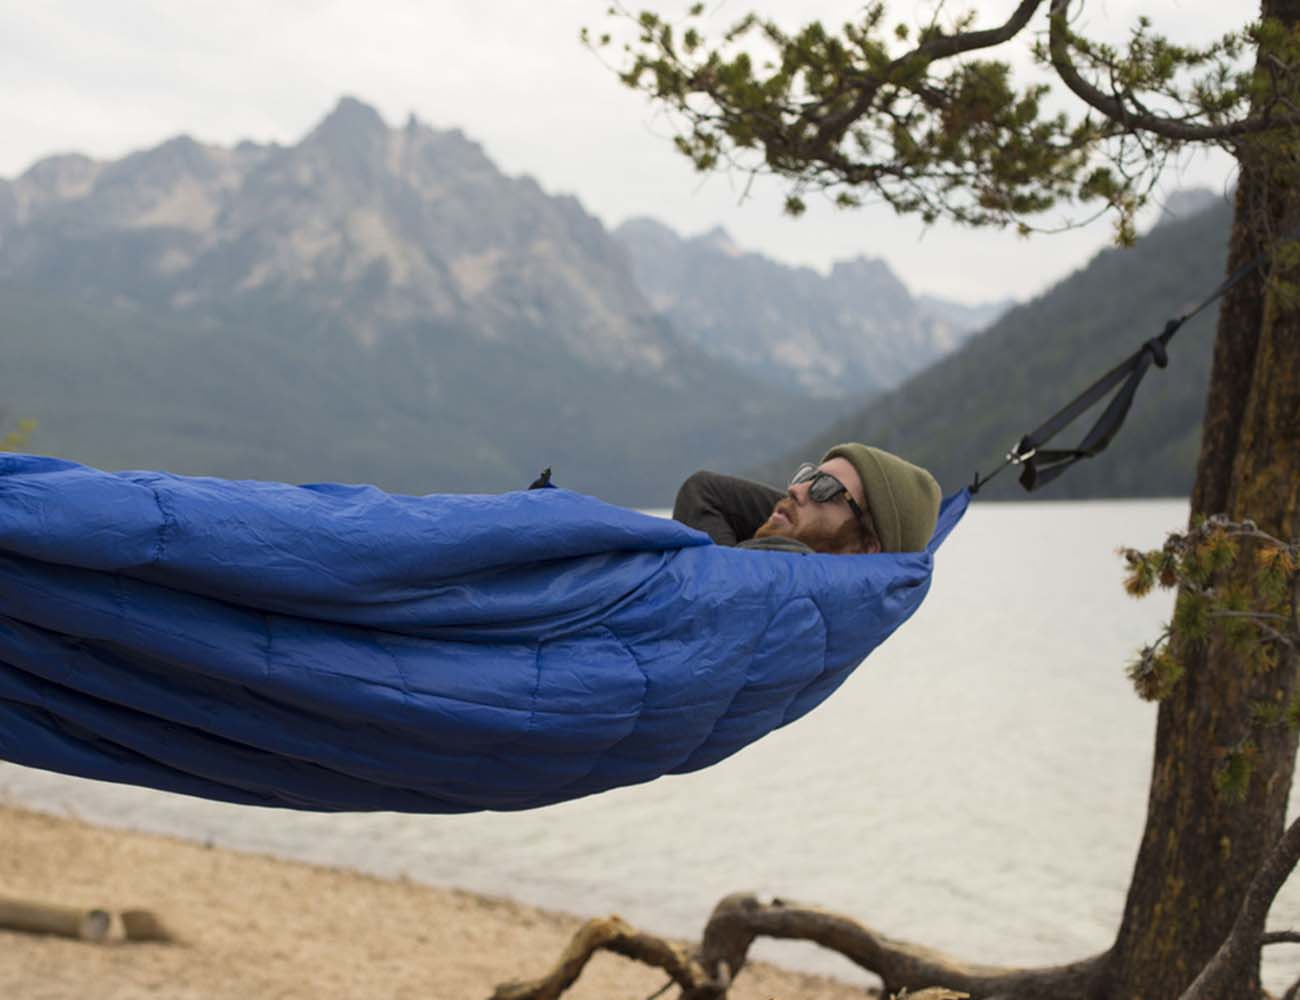 Bison Bag G1 – The World's First Sleeping Bag Hammock